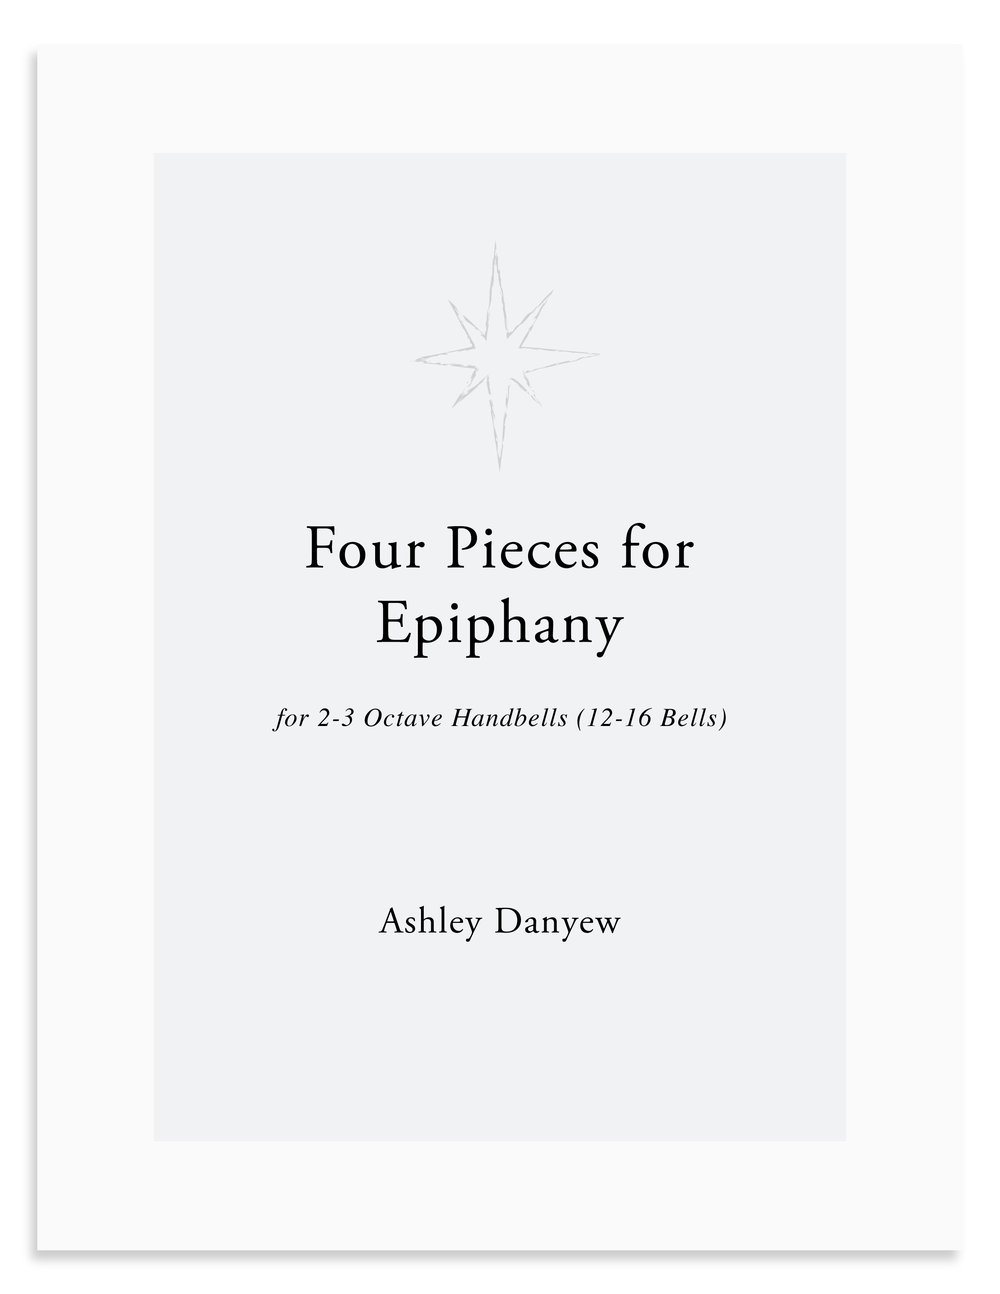 Four Pieces for Epiphany-35.png